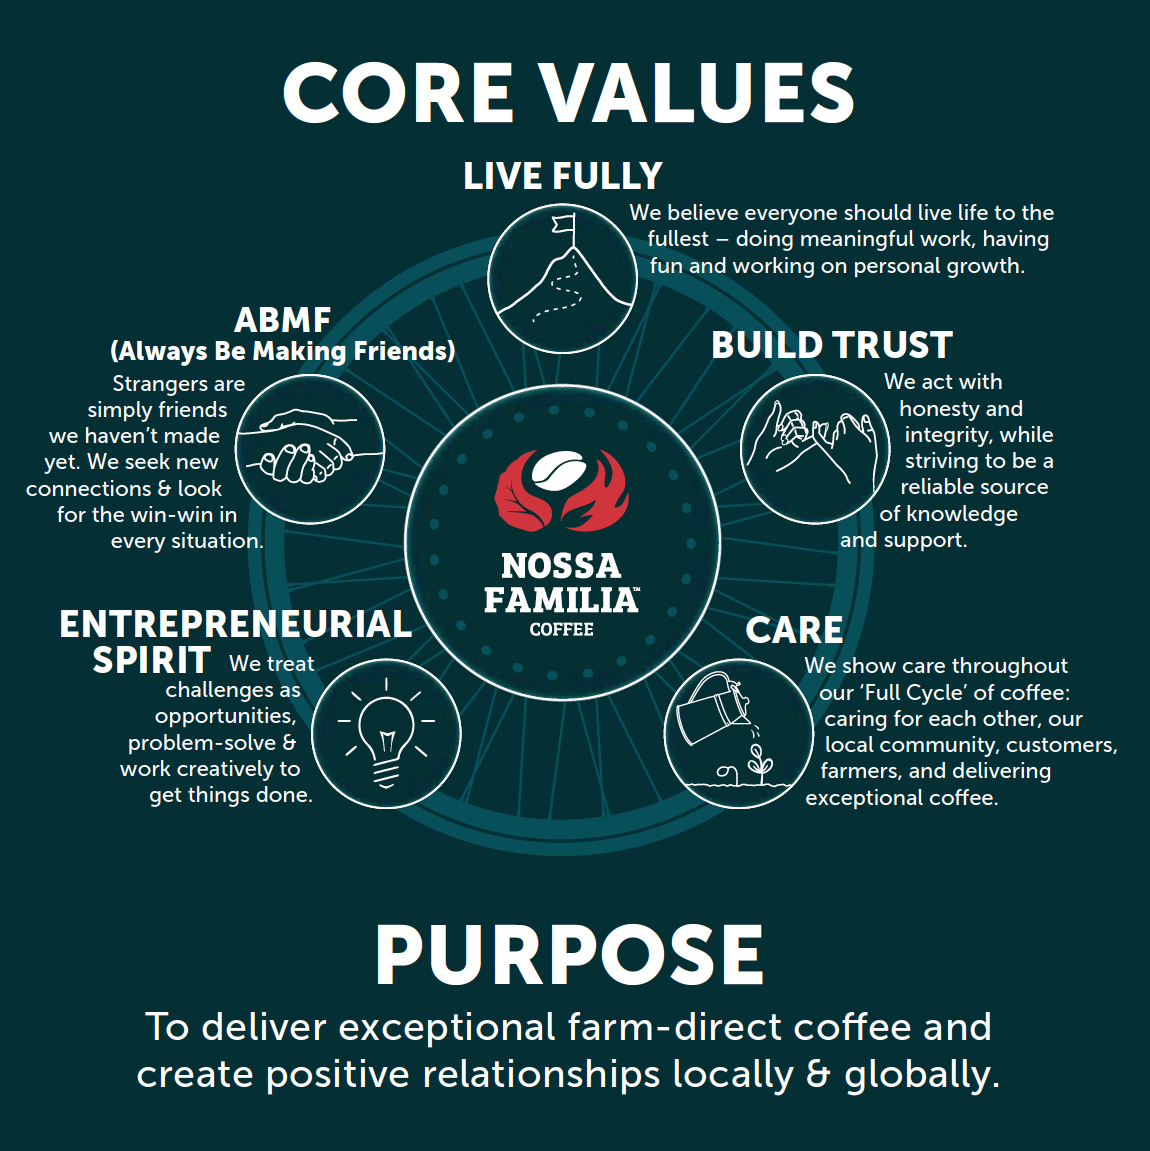 Nossa Familia Coffee's purpose & core values